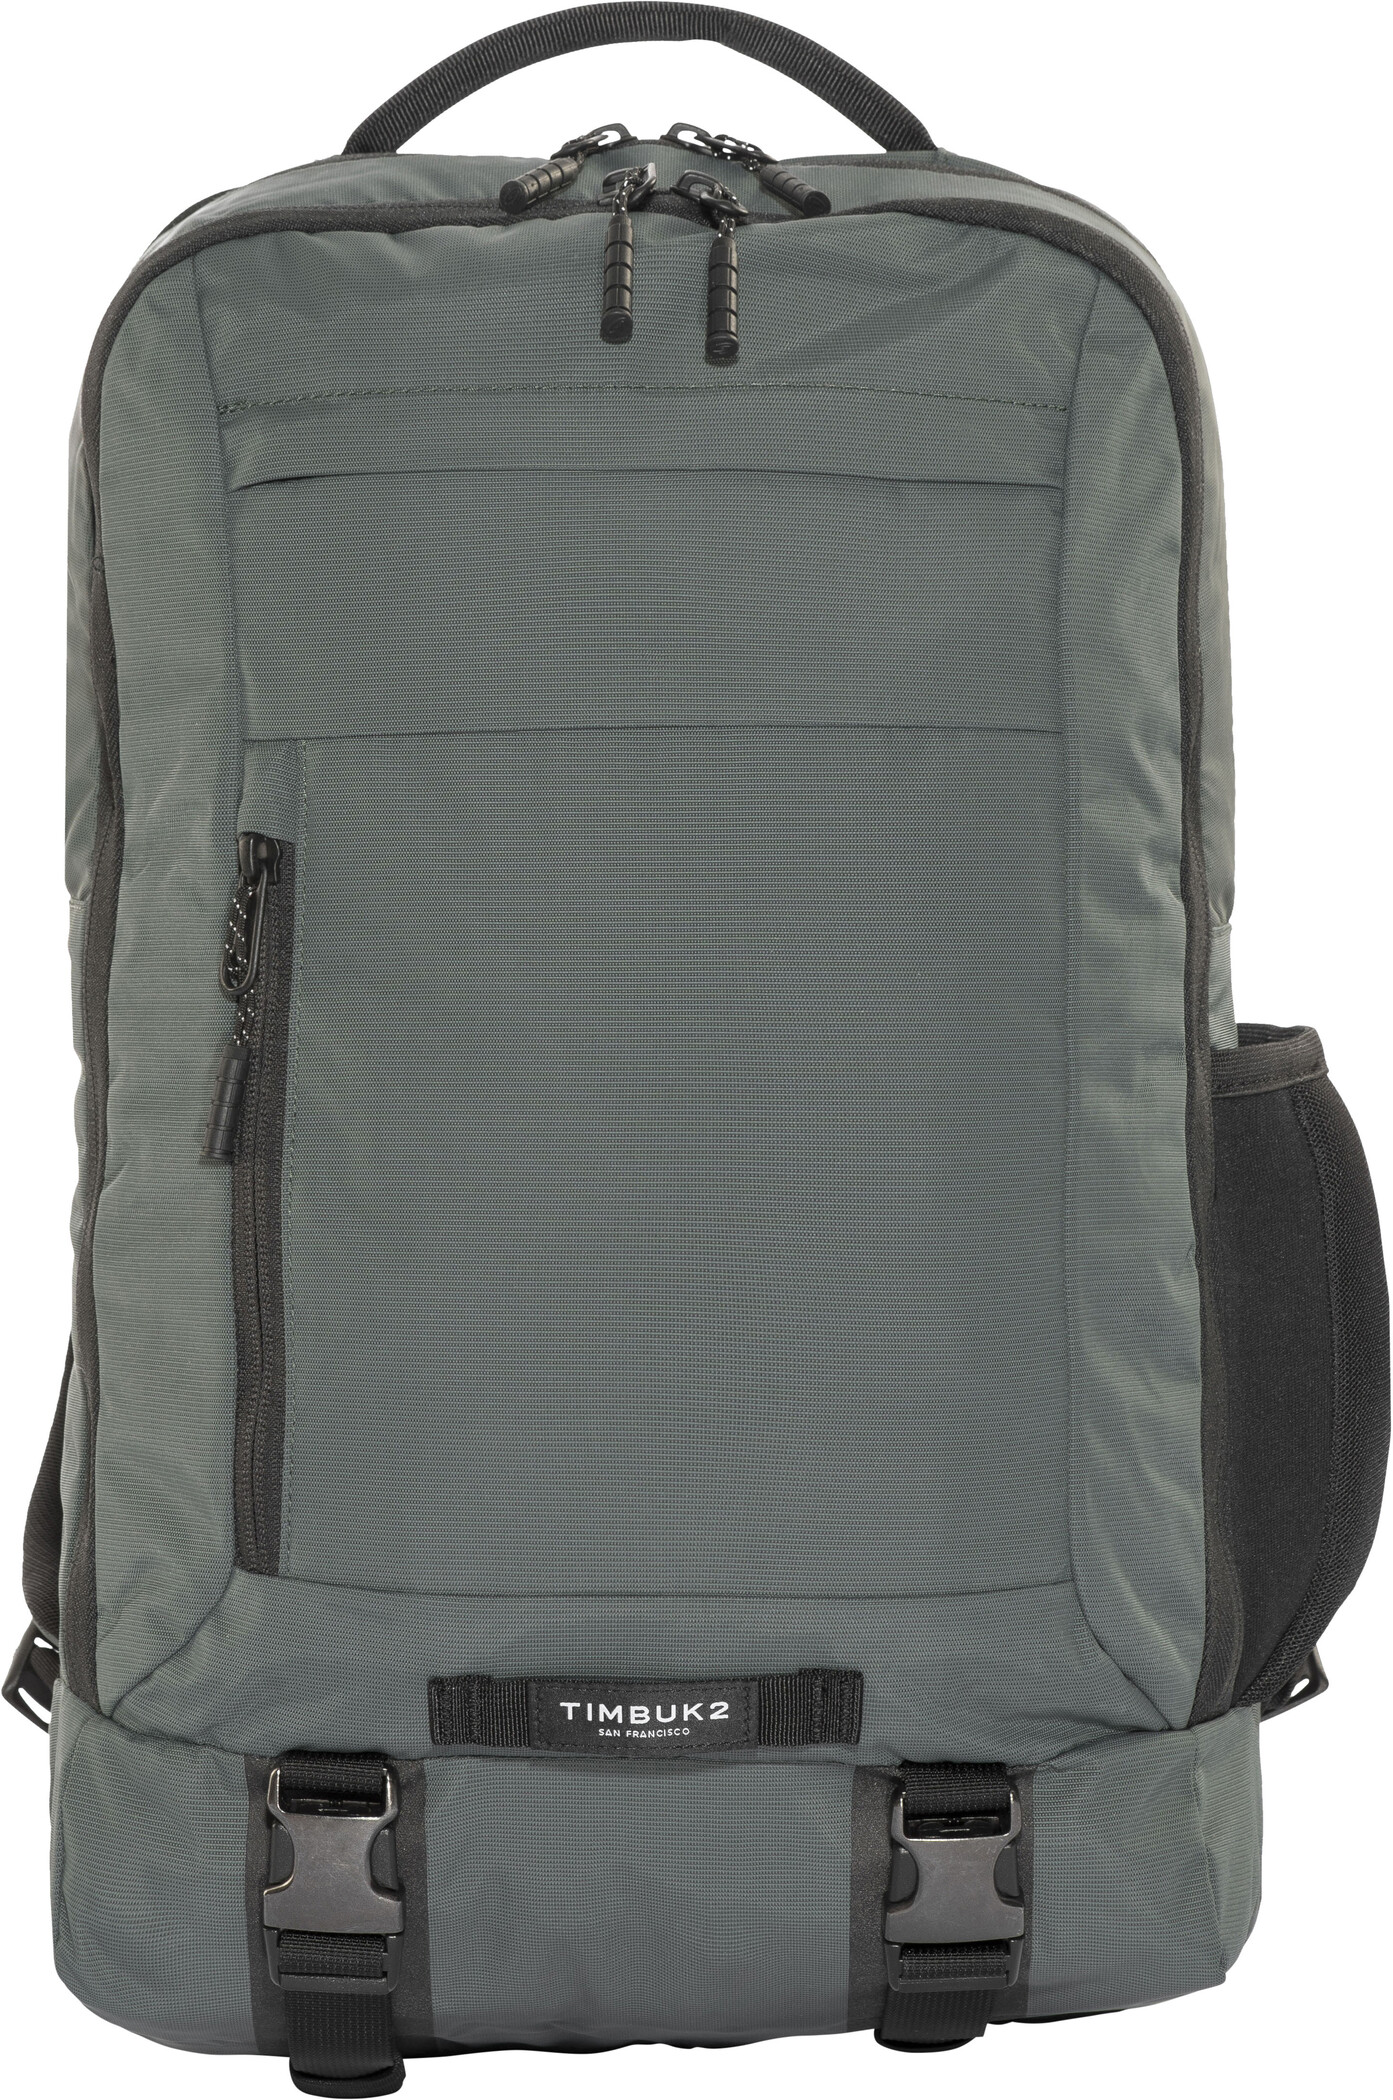 Timbuk2 The Authority Rygsæk, surplus (2019) | Travel bags